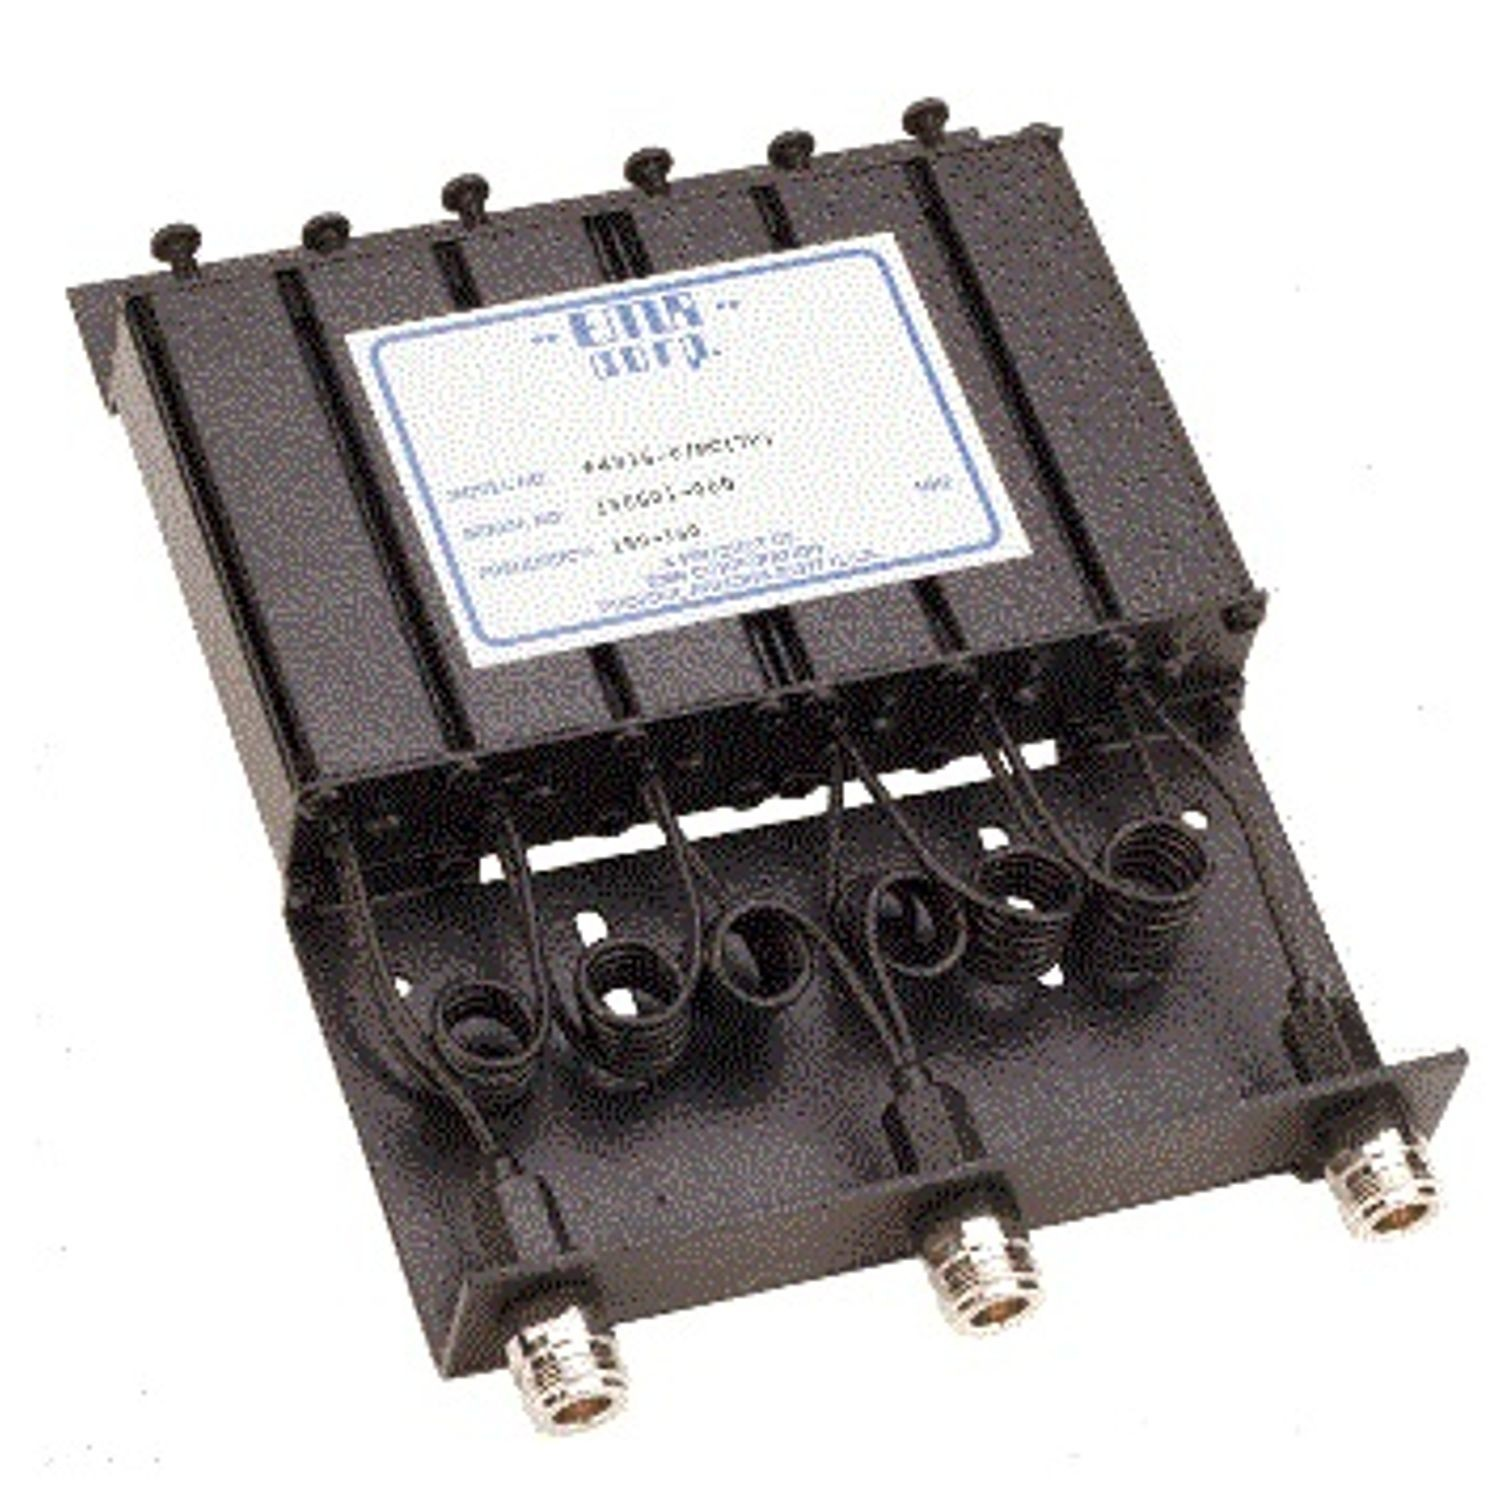 150-160 MHZ MOBILE DUPLEXER, 7 MHZ SPLIT, N-FEMALE